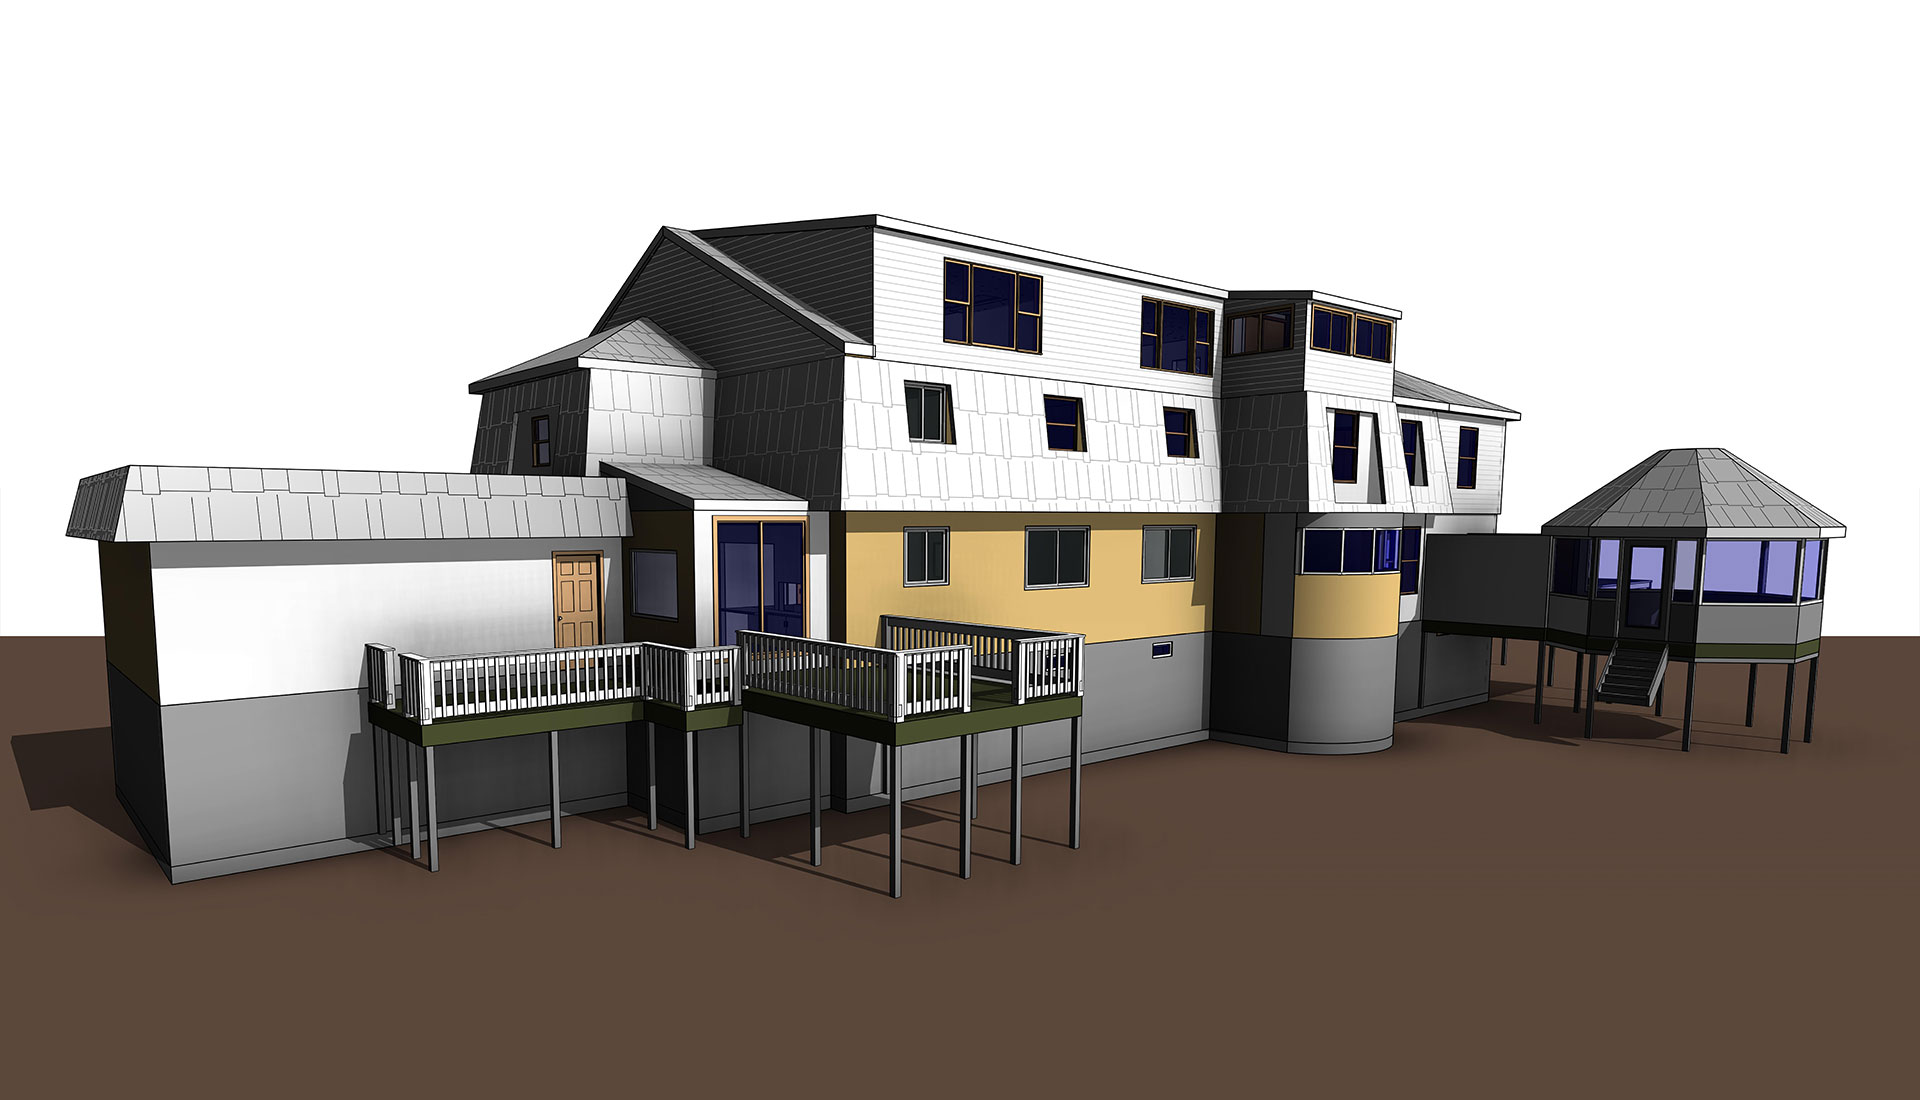 3D-Architectural-BIM-Model_Residential-Project_Revit-Modeling-Project-by-United-BIM